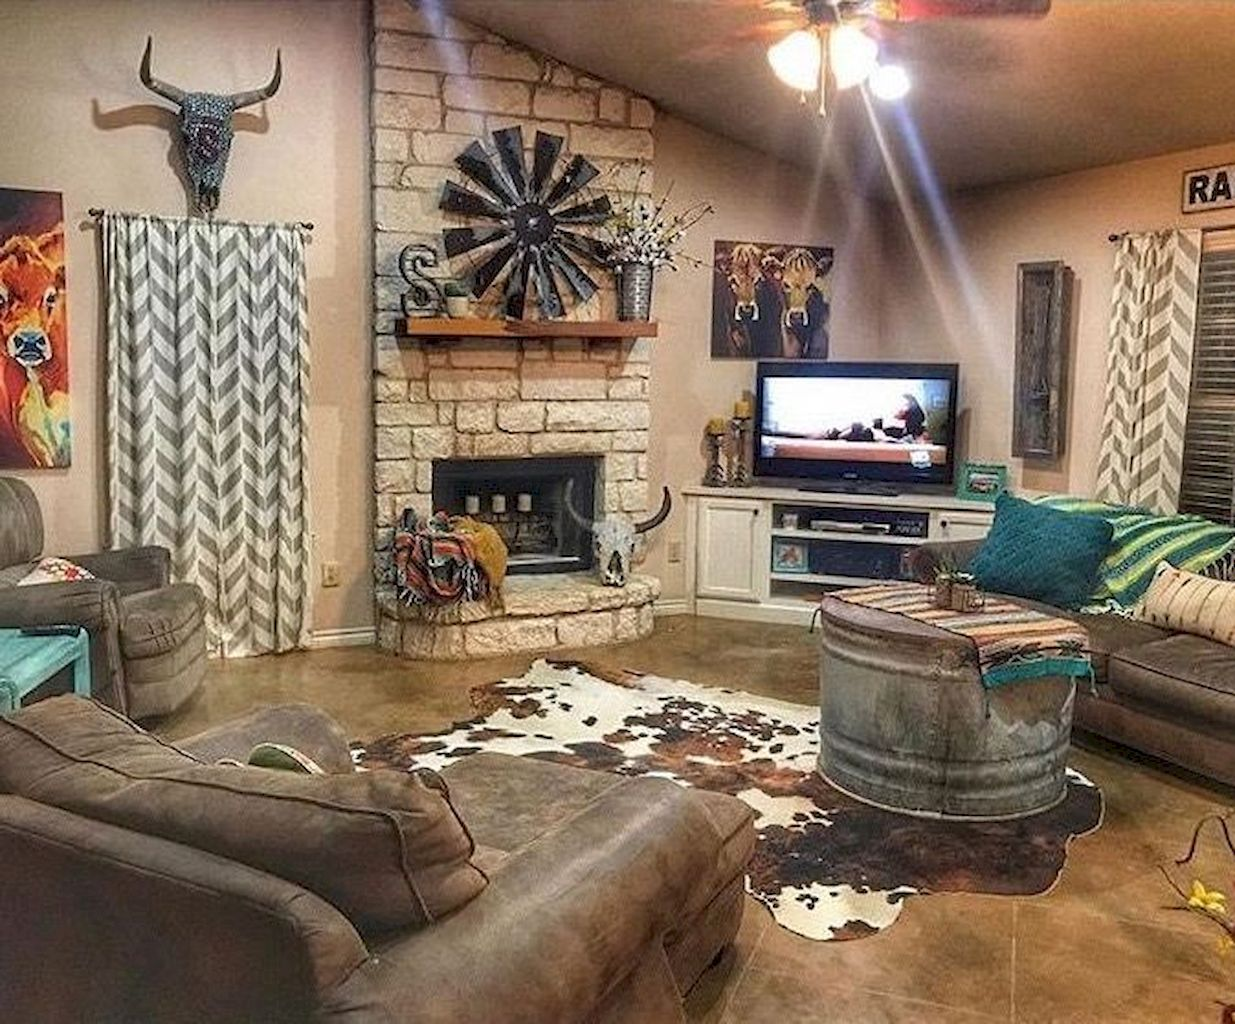 Cool 65 Cozy Farmhouse Living Room Makeover Decor Ideas Https Moodecor Co 1460 65 Cozy Fa Western Living Room Decor Farm House Living Room Western Home Decor